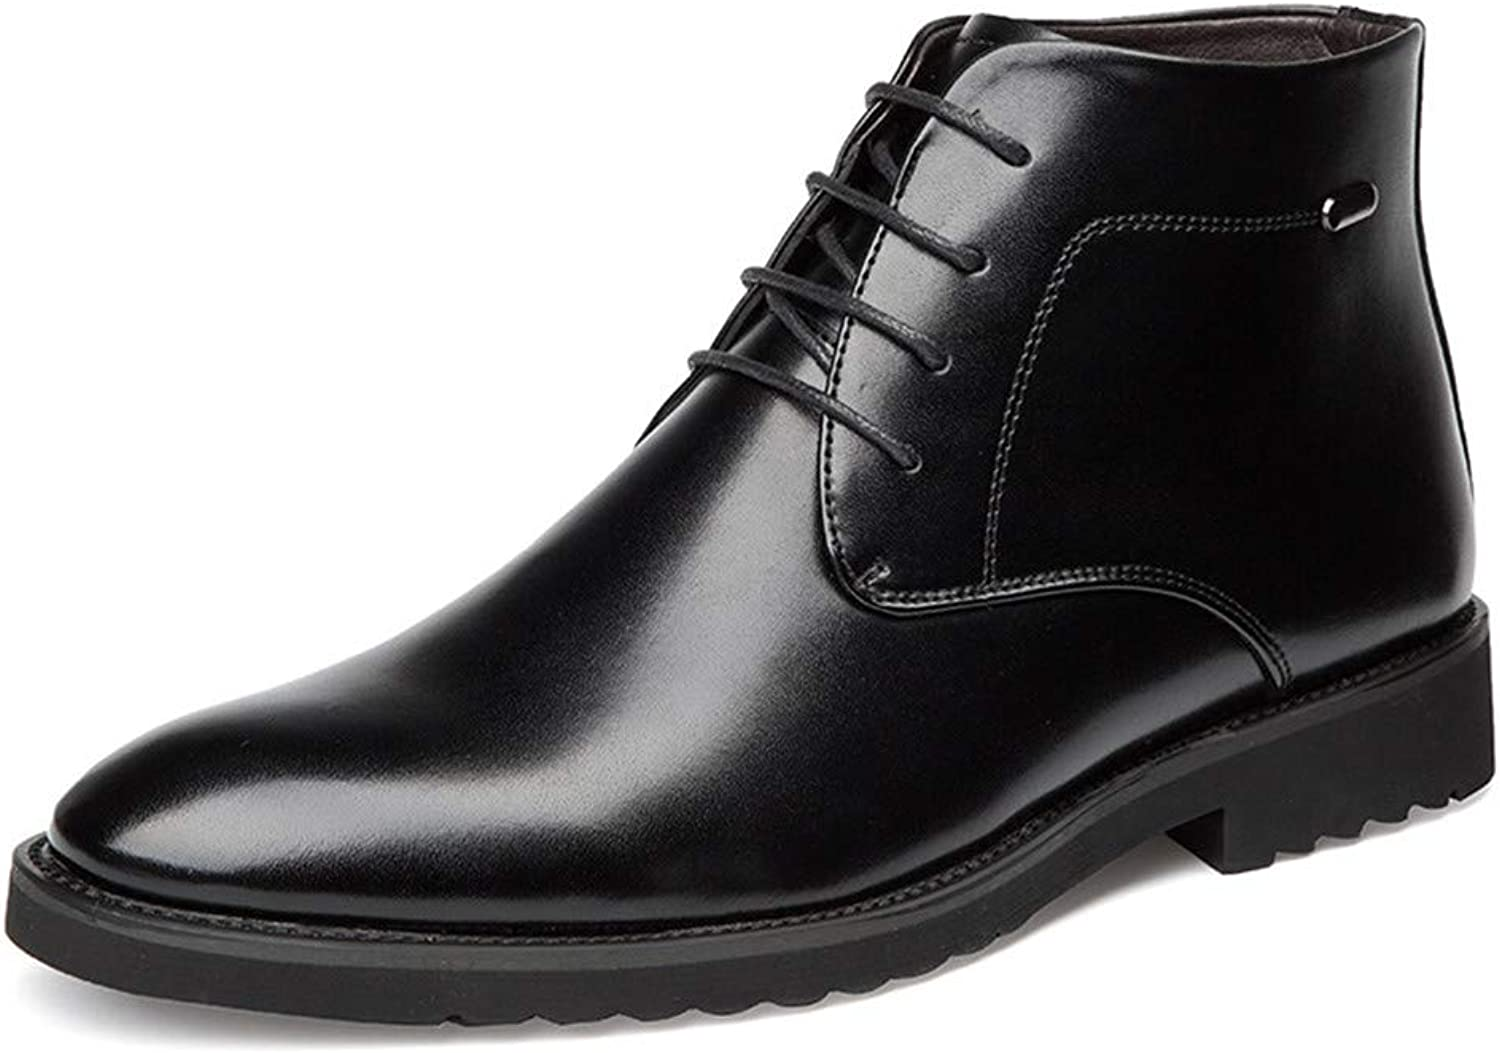 Goodtimeshow Autumn Winter Men's Chelsea Boots,British Style Ankle Boots Soft Leather Men Casual shoes Boots